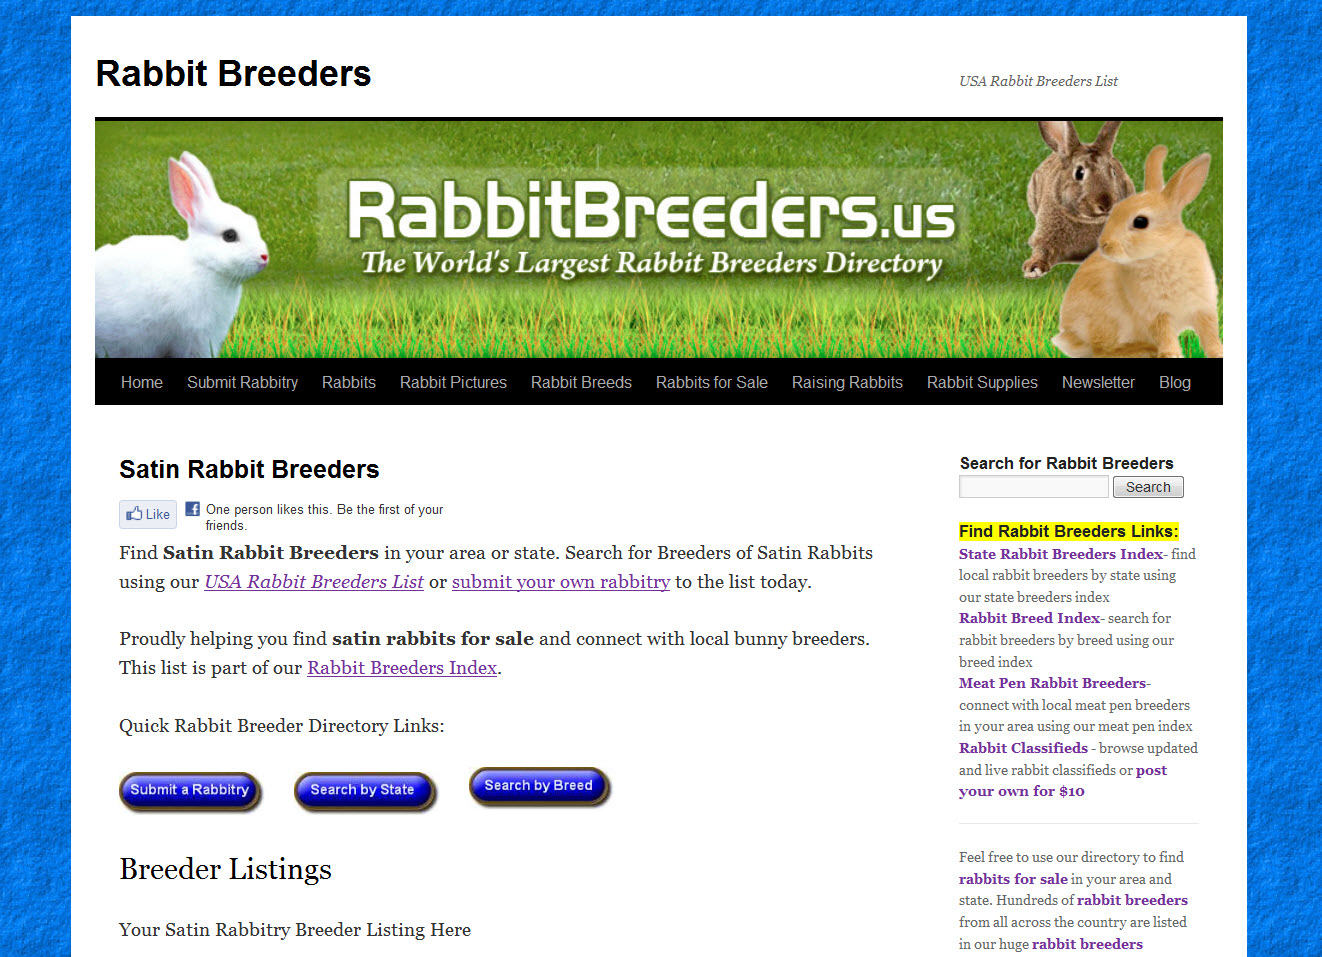 Satin Rabbit Breeders